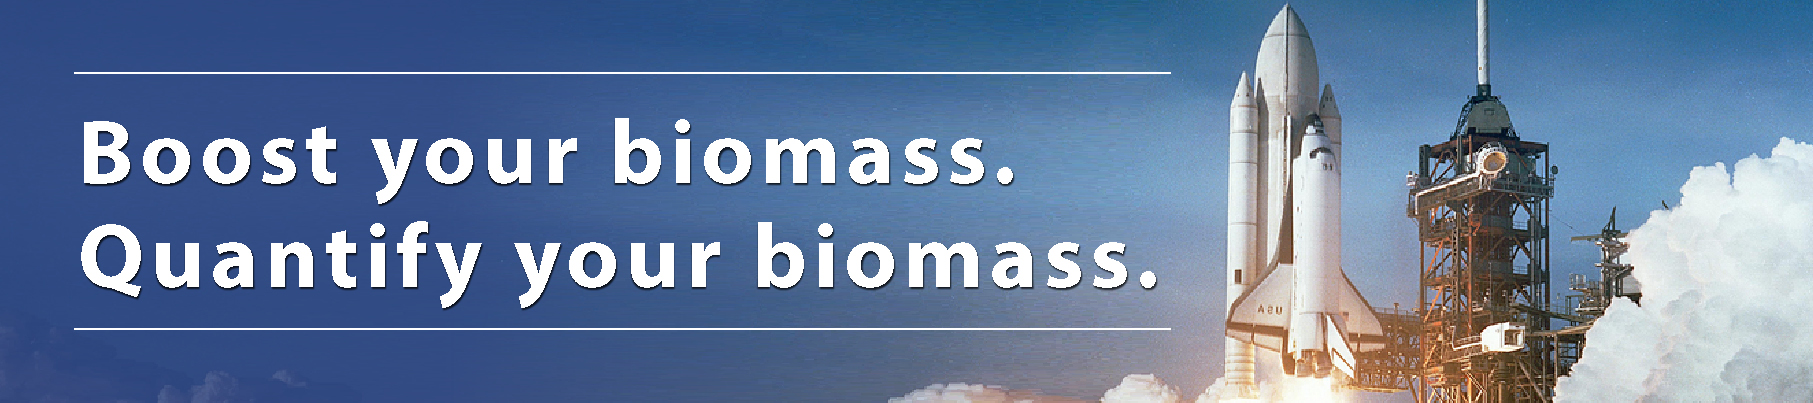 boost biomass blog banner